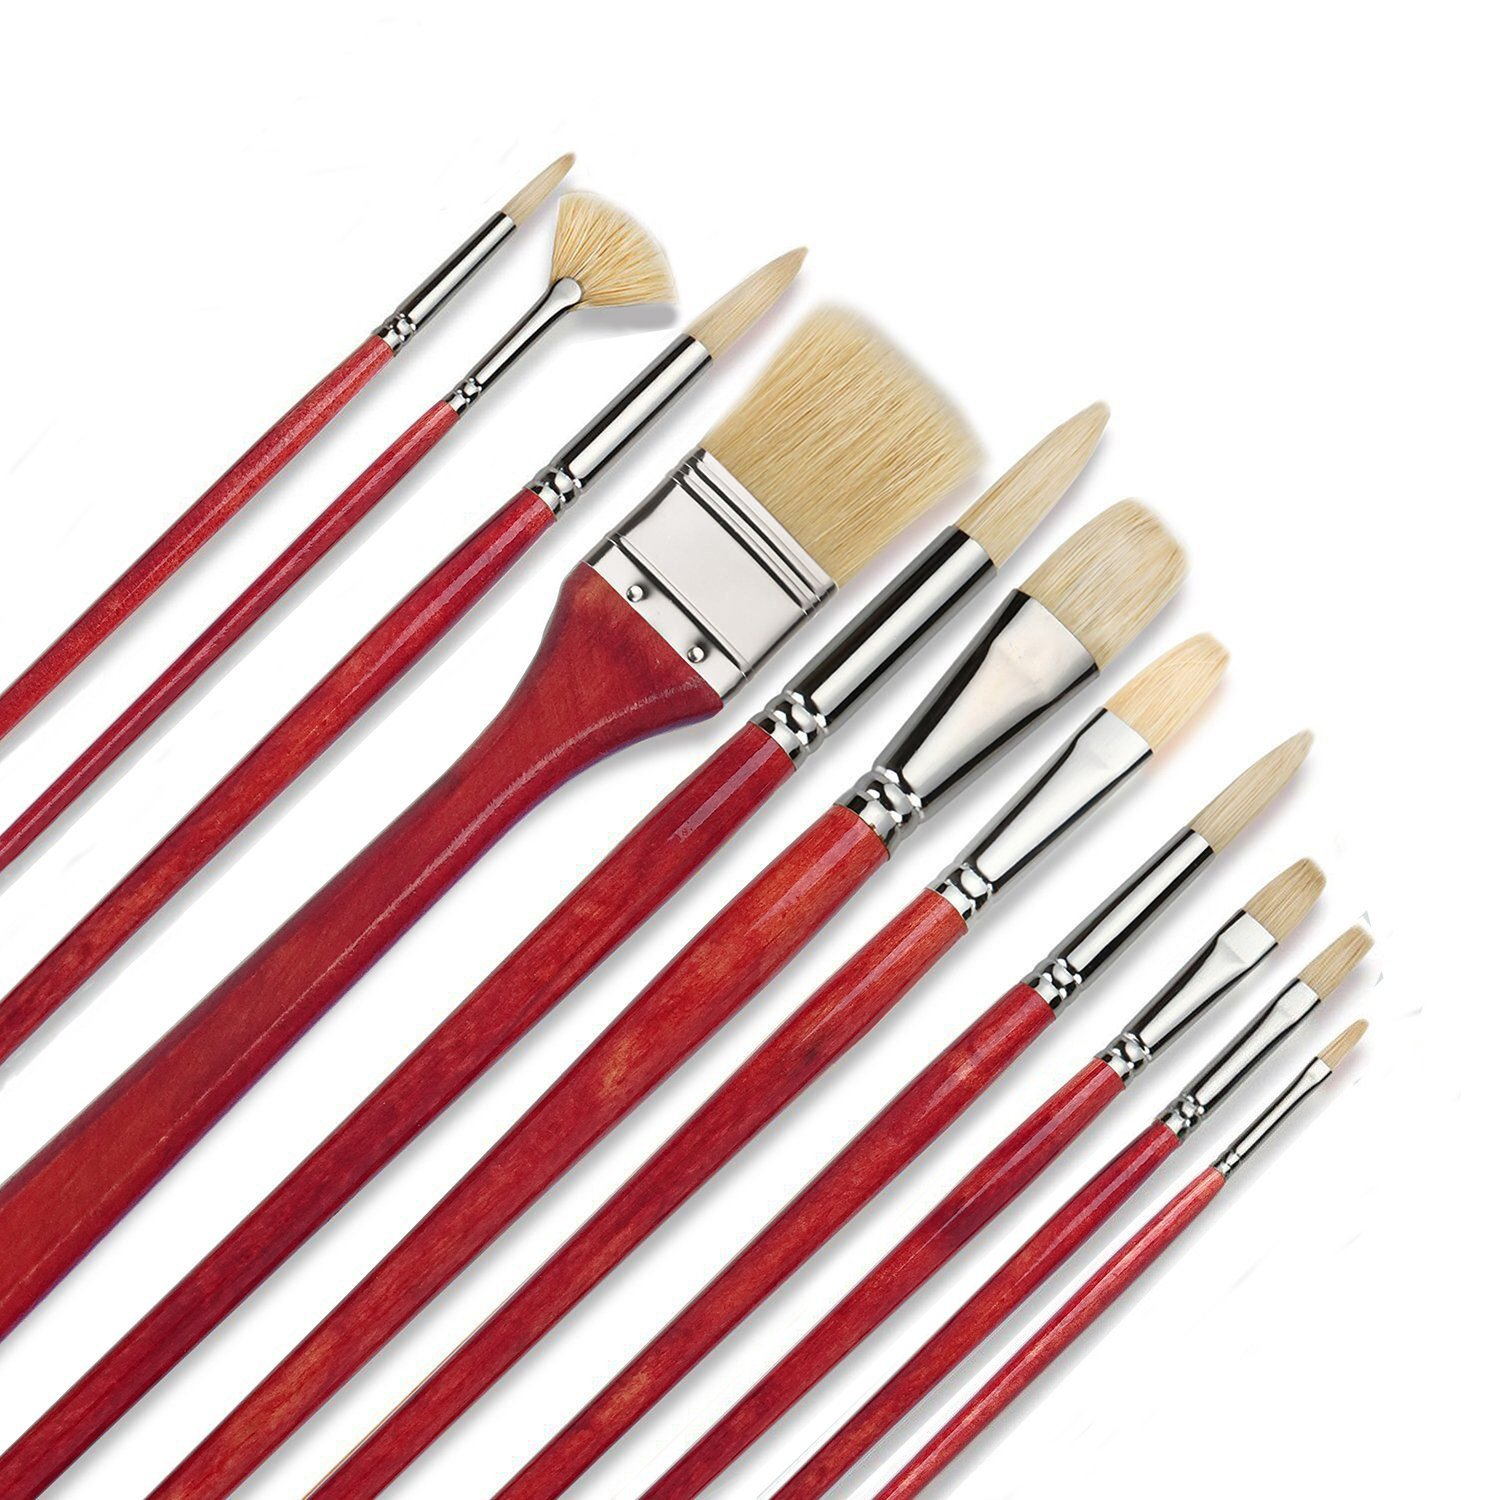 11 pcs Professional Oil & Acrylics Artist Brushes Pure Hog Bristles Lacquered Birchwood Long Handles with a Free ZHOUXF